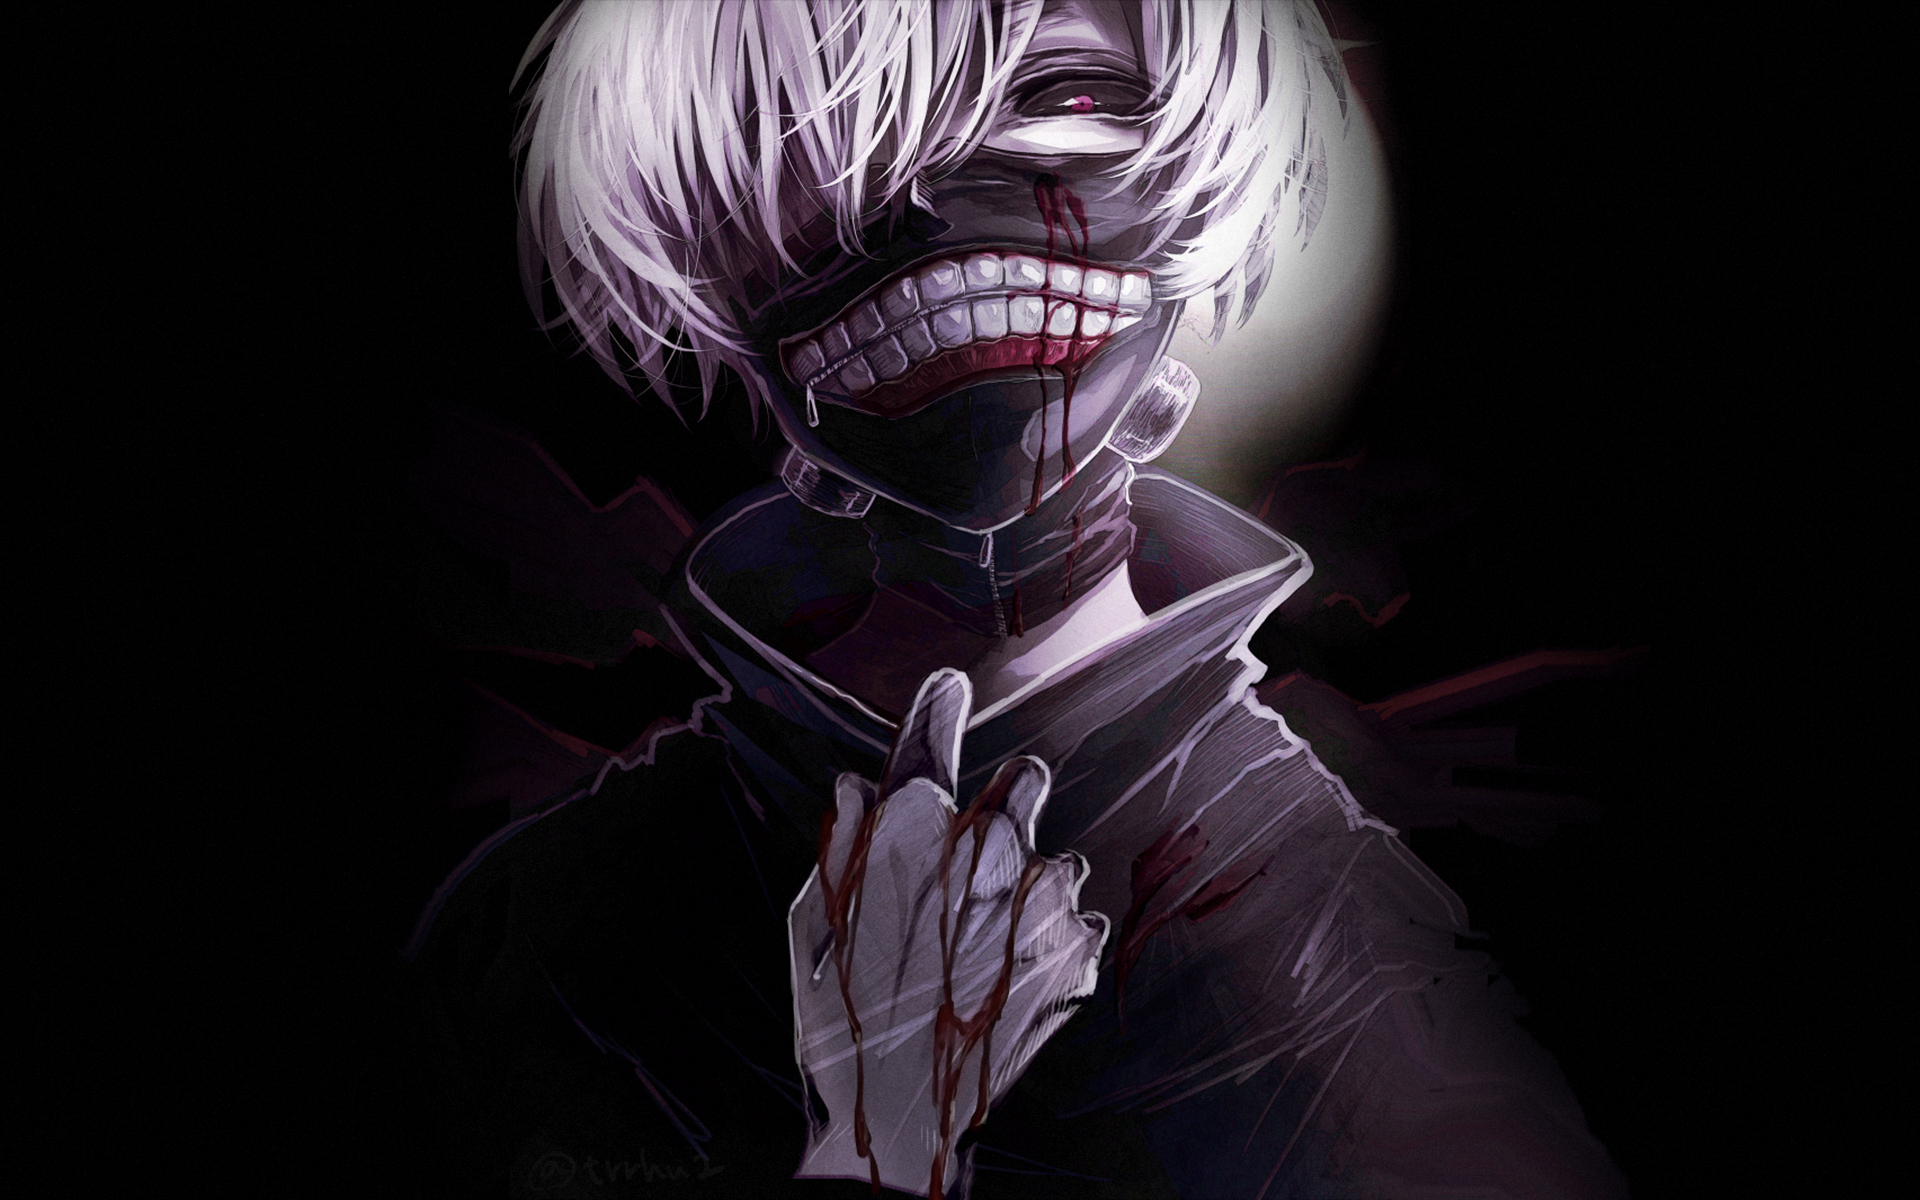 Tokyo Ghoul Wallpapers High Quality | Download Free